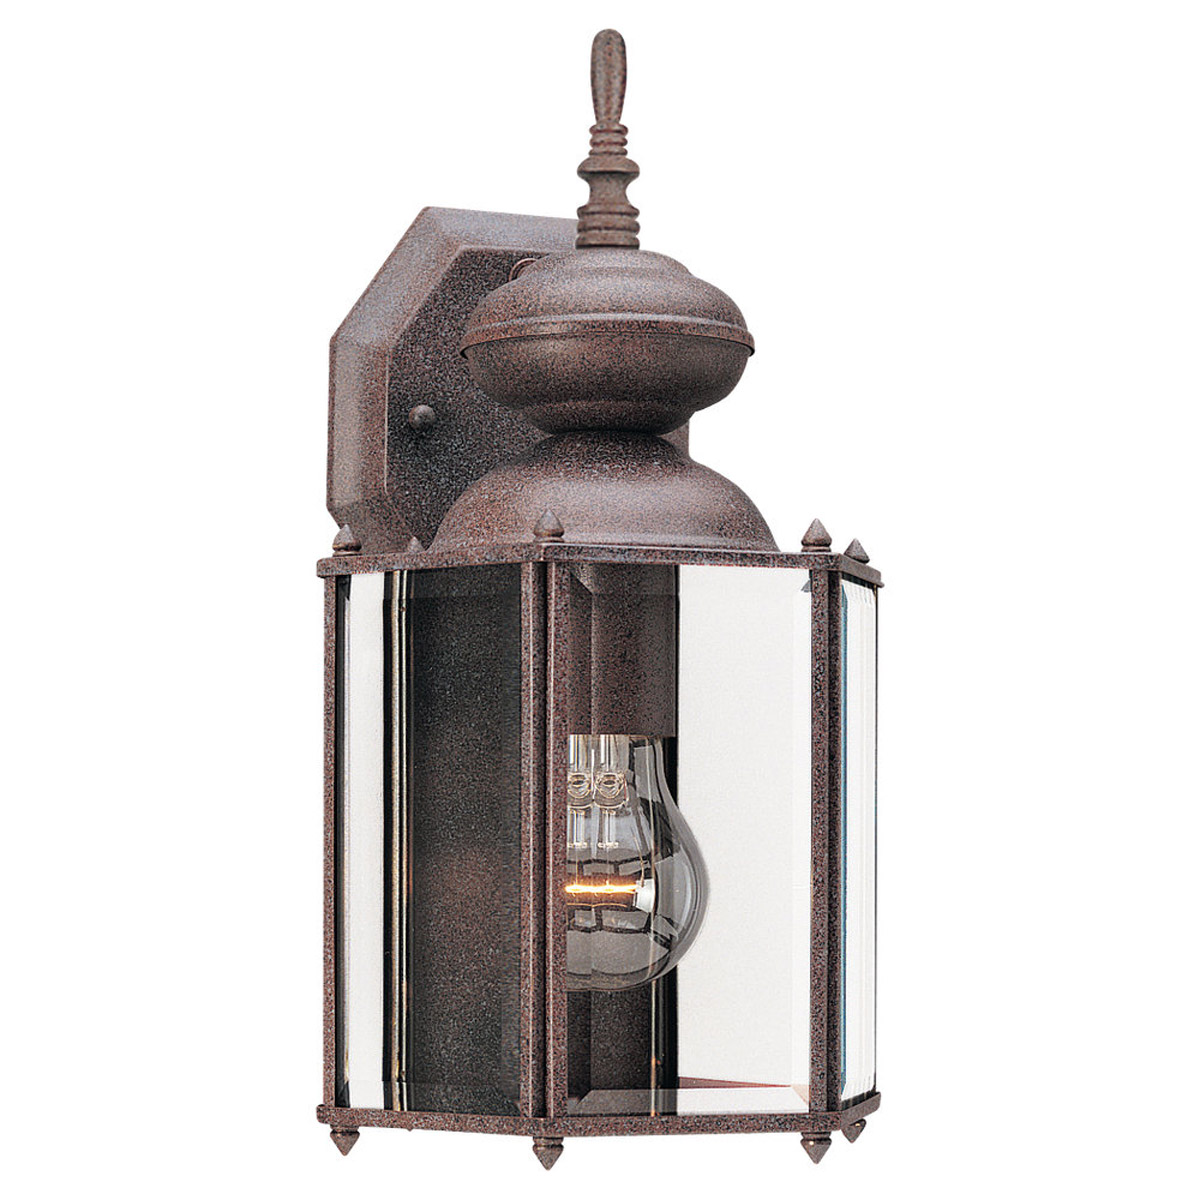 Sea Gull Lighting Classico 1 Light Outdoor Wall Lantern in Sienna 8509-26